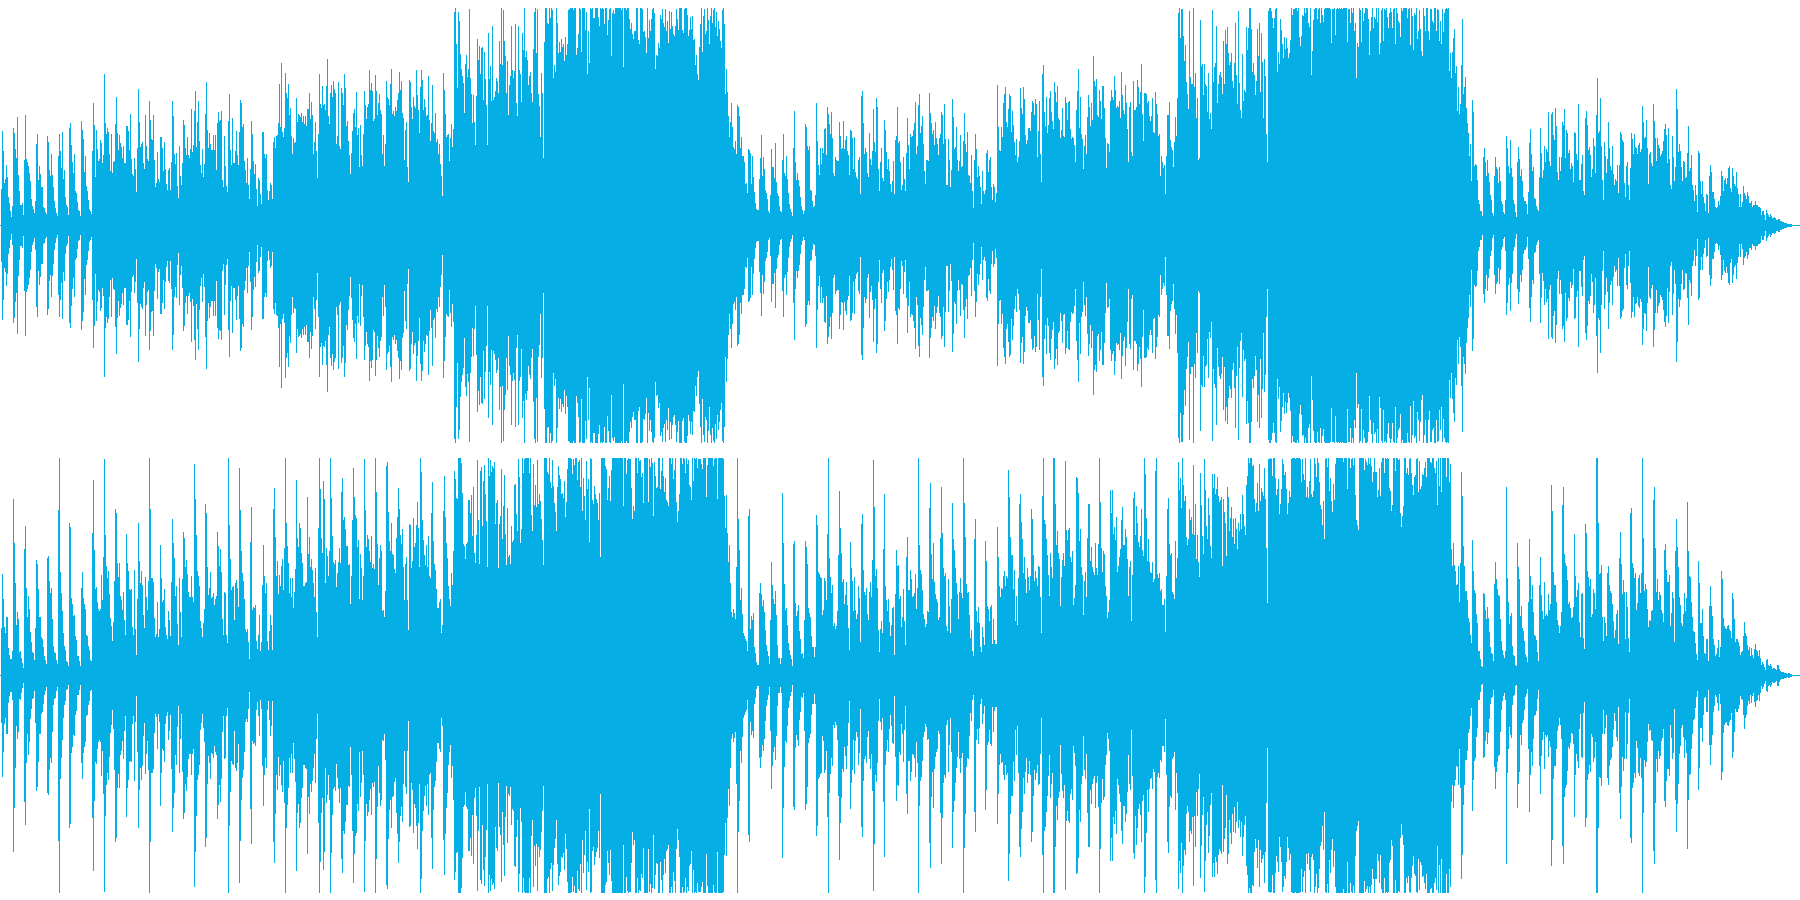 Music using Irish and Celtic instruments's reproduced waveform